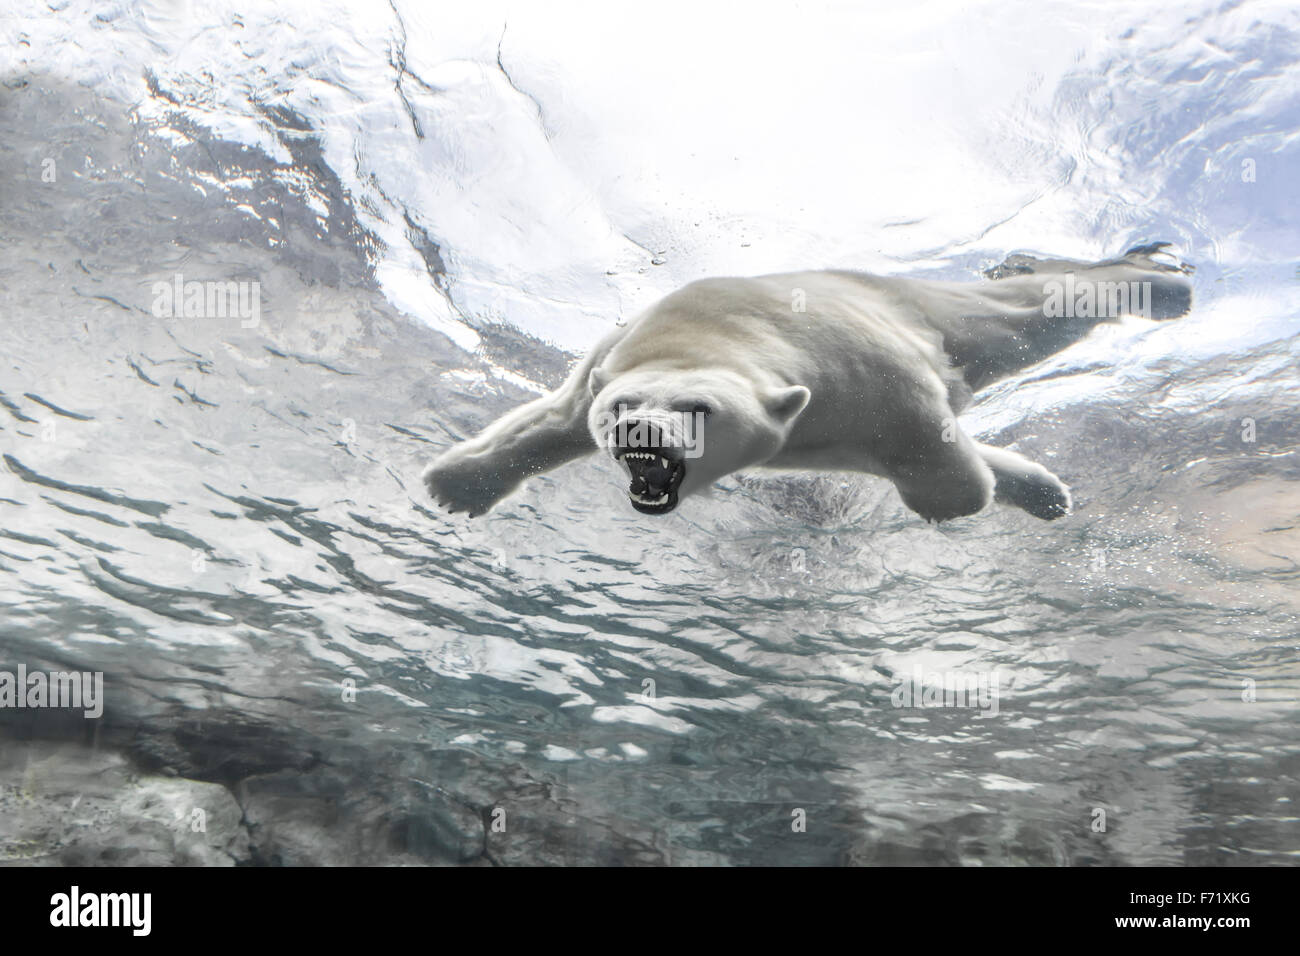 Aggressive Polar Bear, swimming underwater at the Journey to Churchill, Assiniboine Park Zoo, Winnipeg, Manitoba, - Stock Image